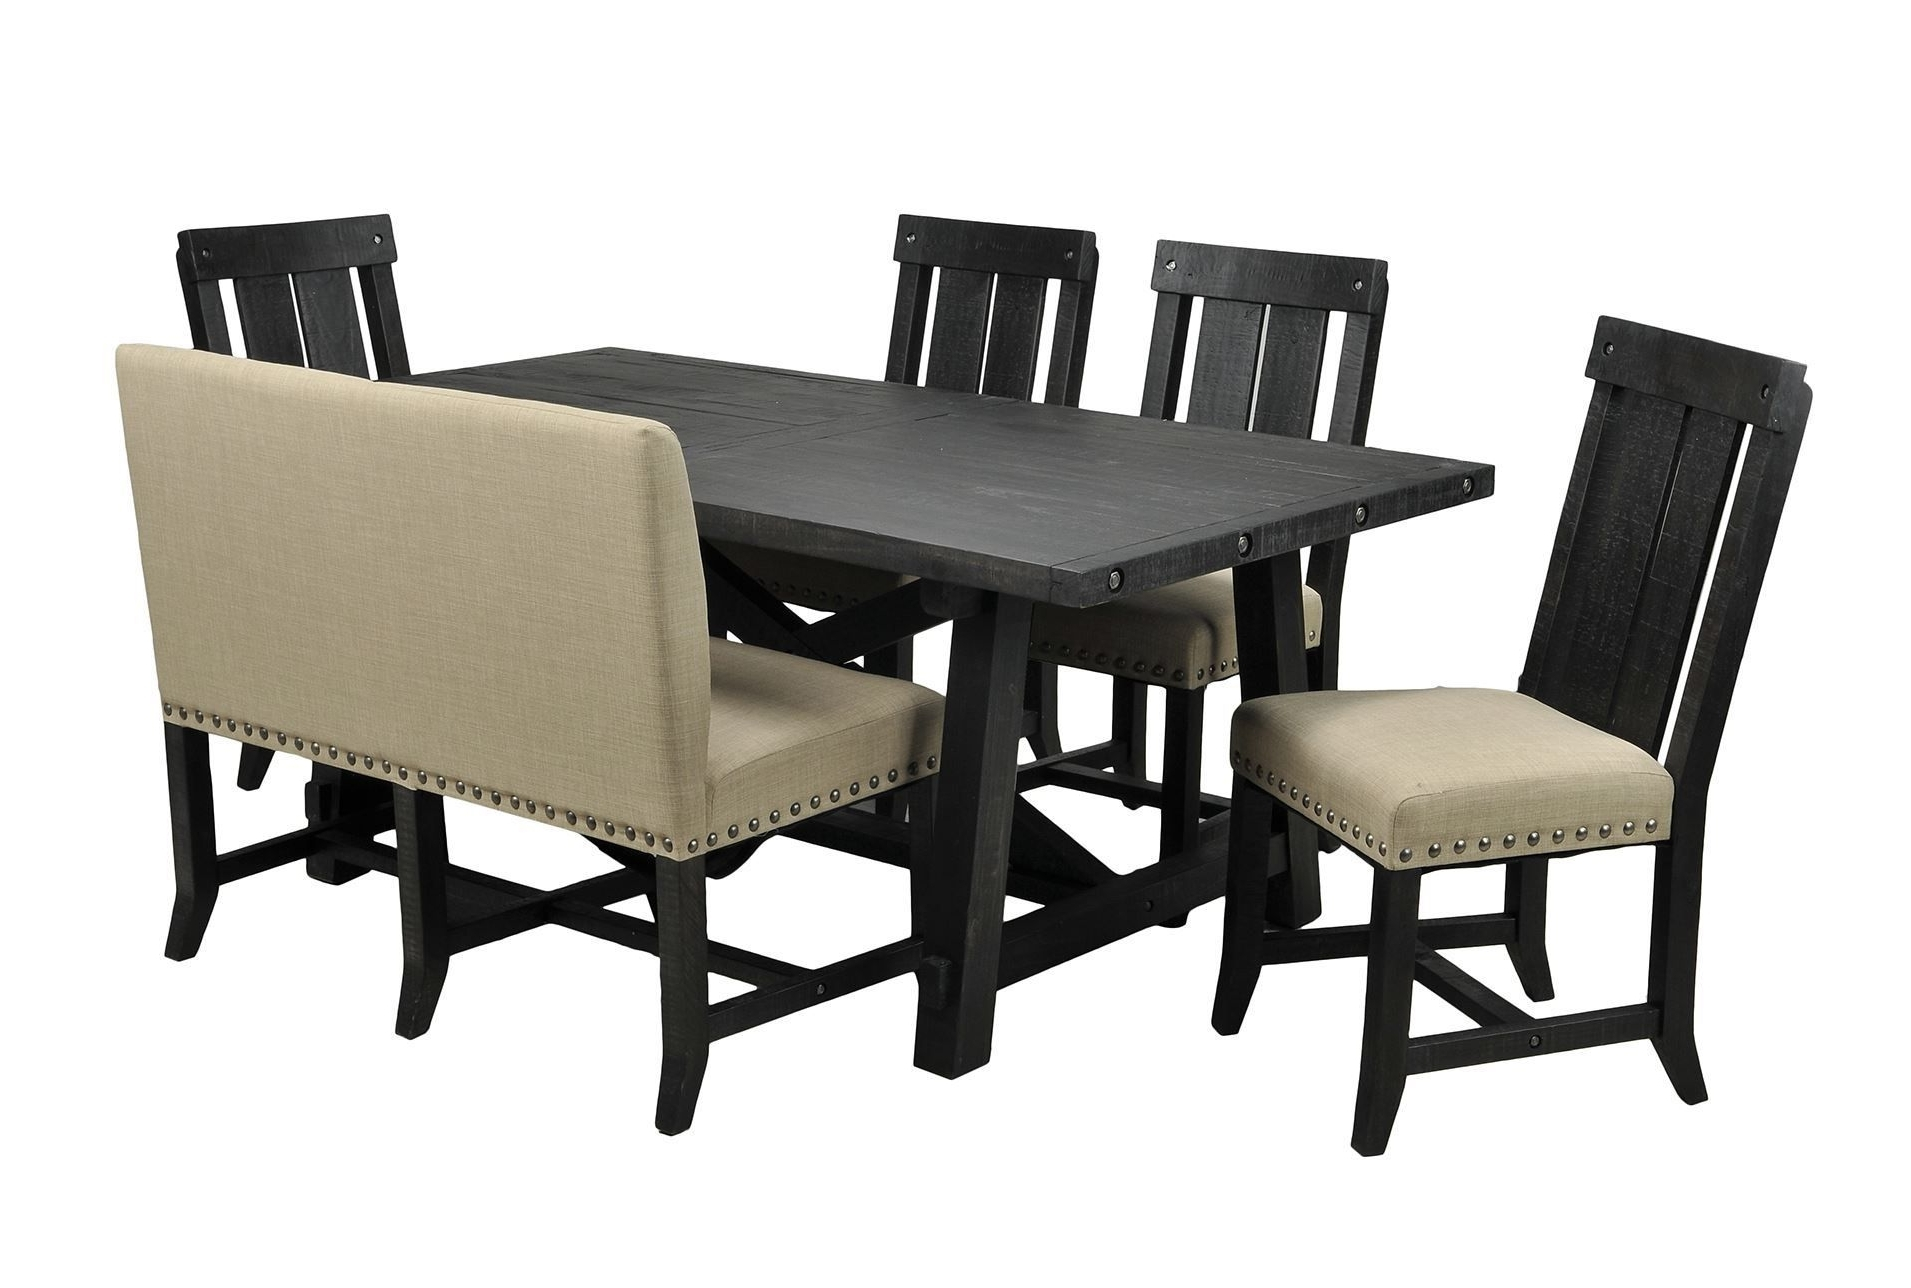 Jaxon 6 Piece Rectangle Dining Set W/bench & Wood Chairs, Café with Best and Newest Jaxon 6 Piece Rectangle Dining Sets With Bench & Uph Chairs